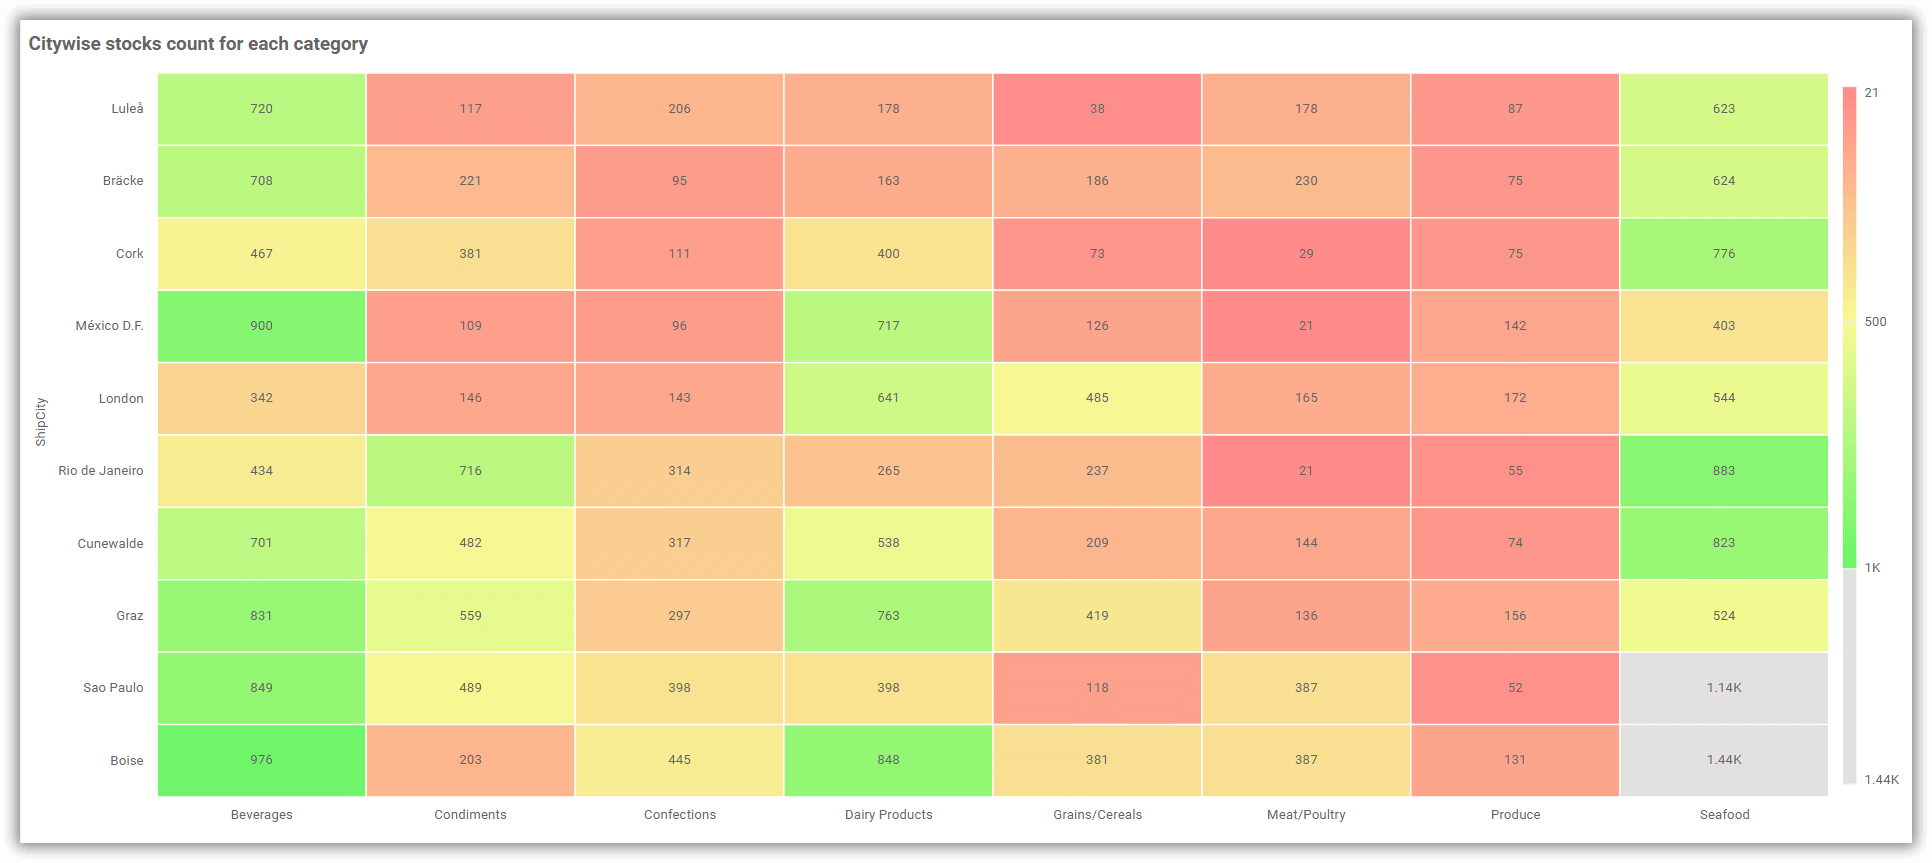 Customized Heatmap